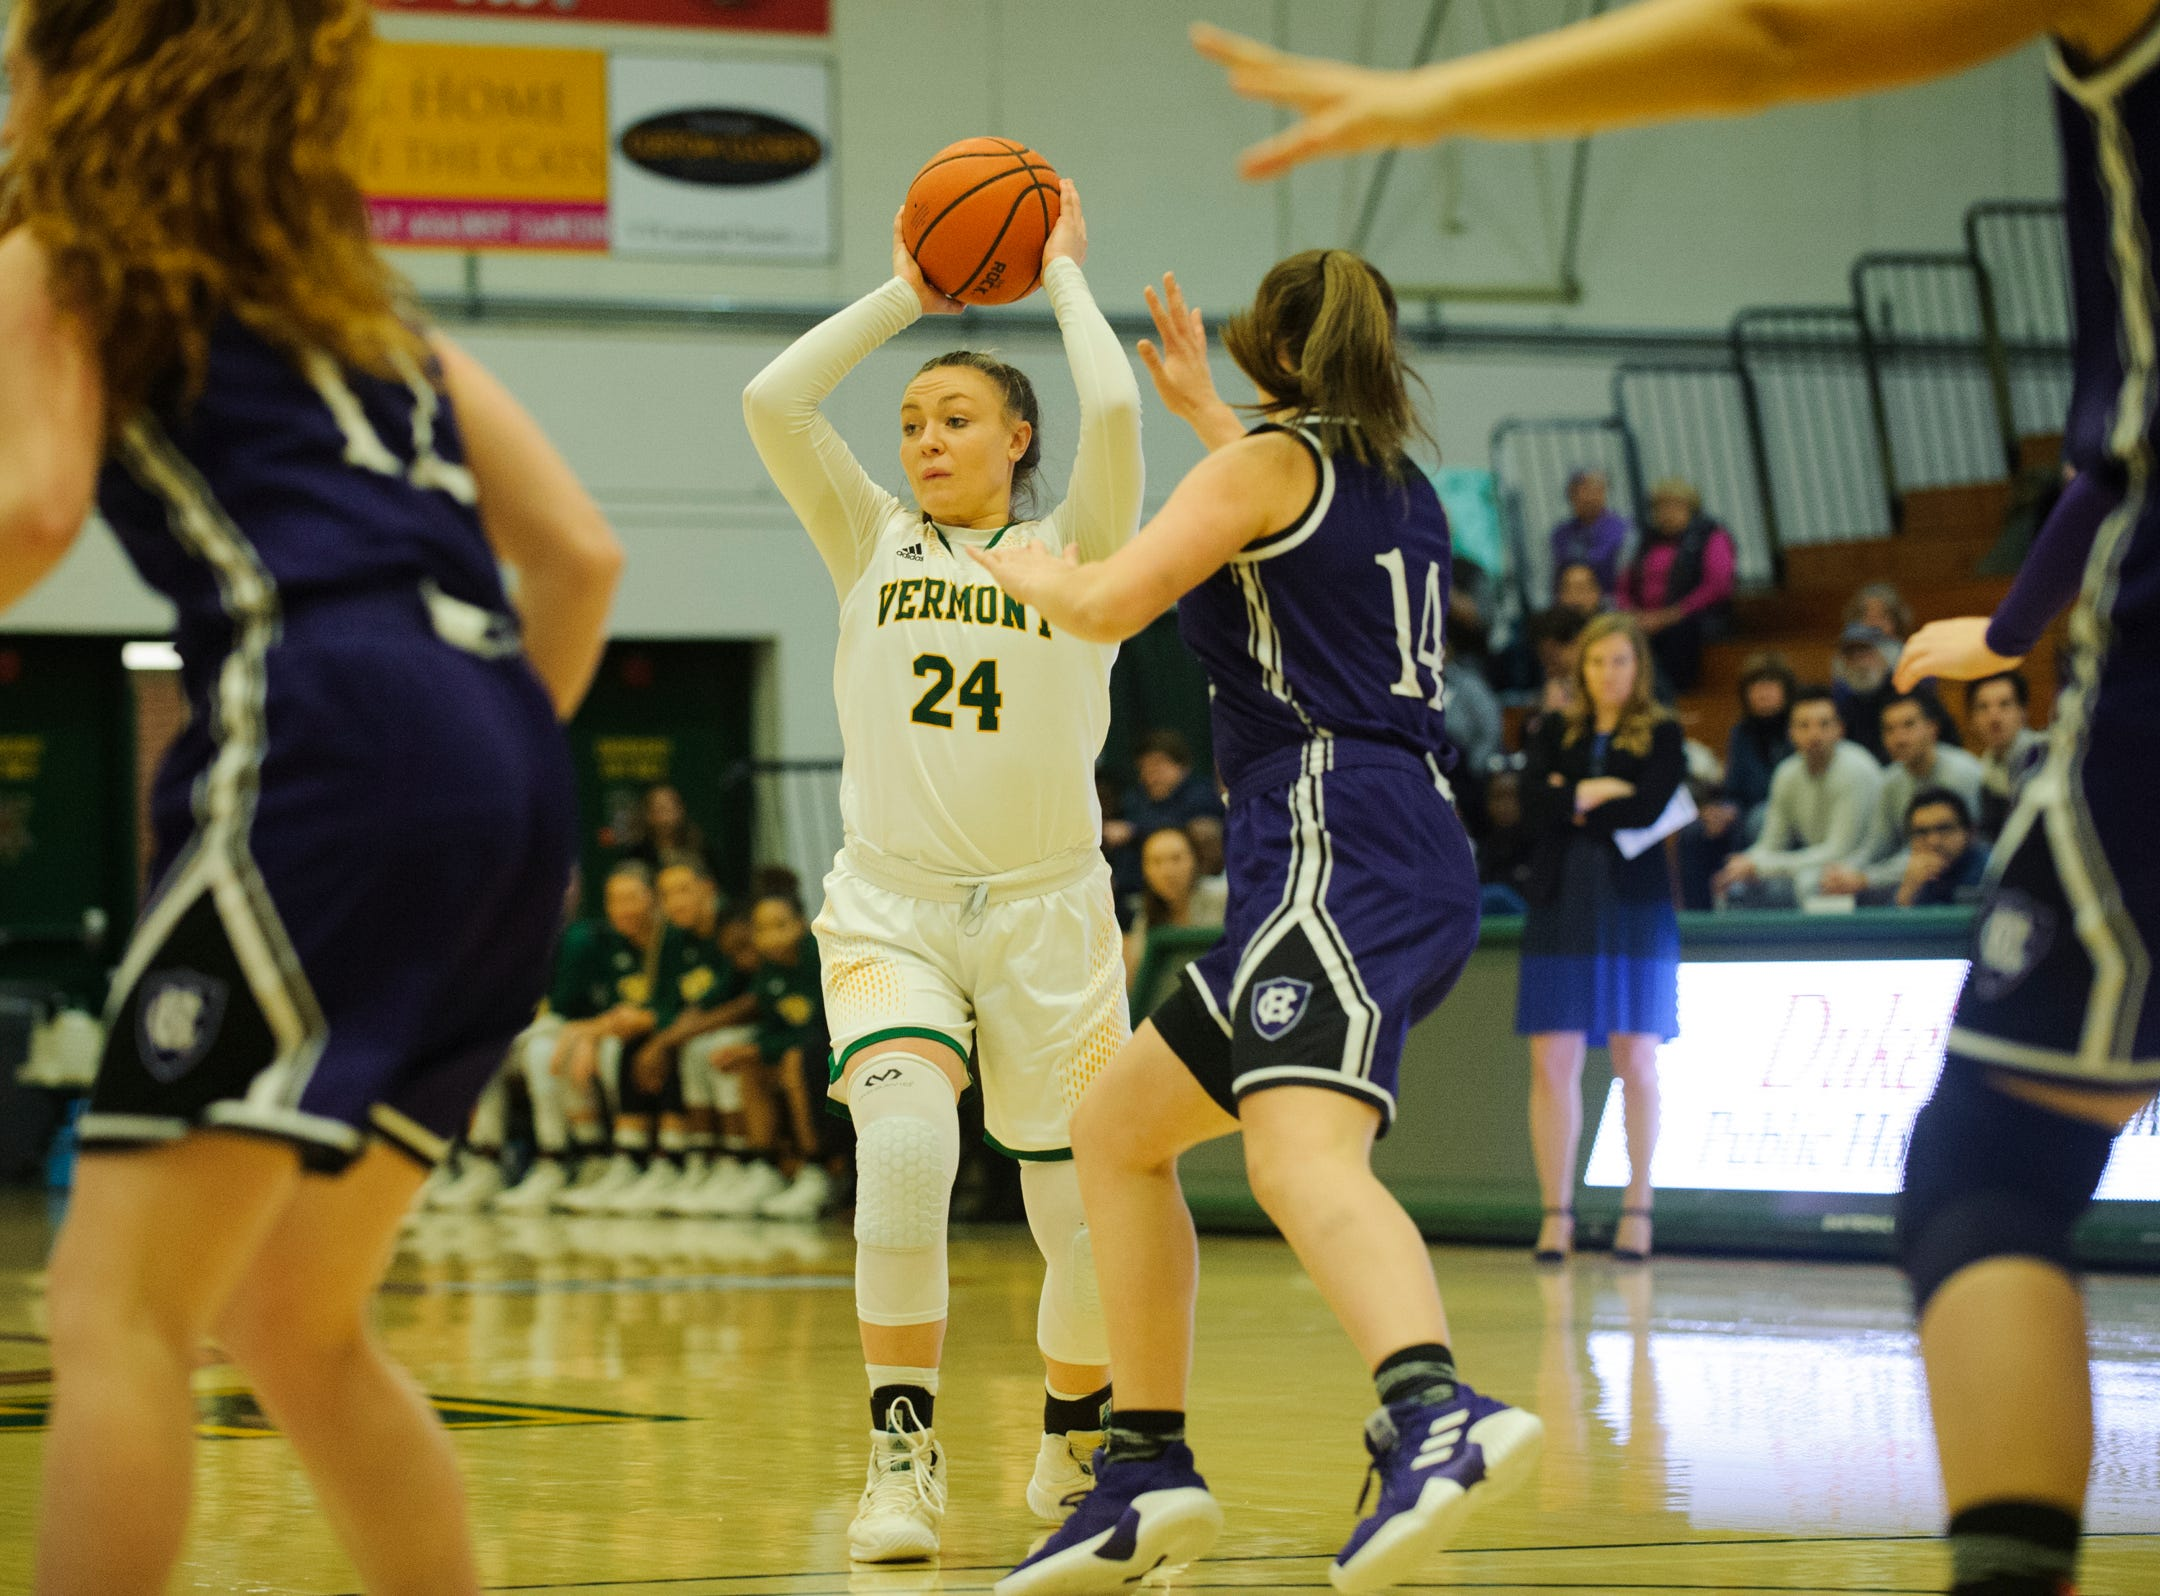 Vermont's Rose Caverly (24) looks to pass the ball during the women's basketball game between the Holy Cross Crusaders and the Vermont Catamounts at Patrick Gym on Wednesday night November 28, 2018 in Burlington.